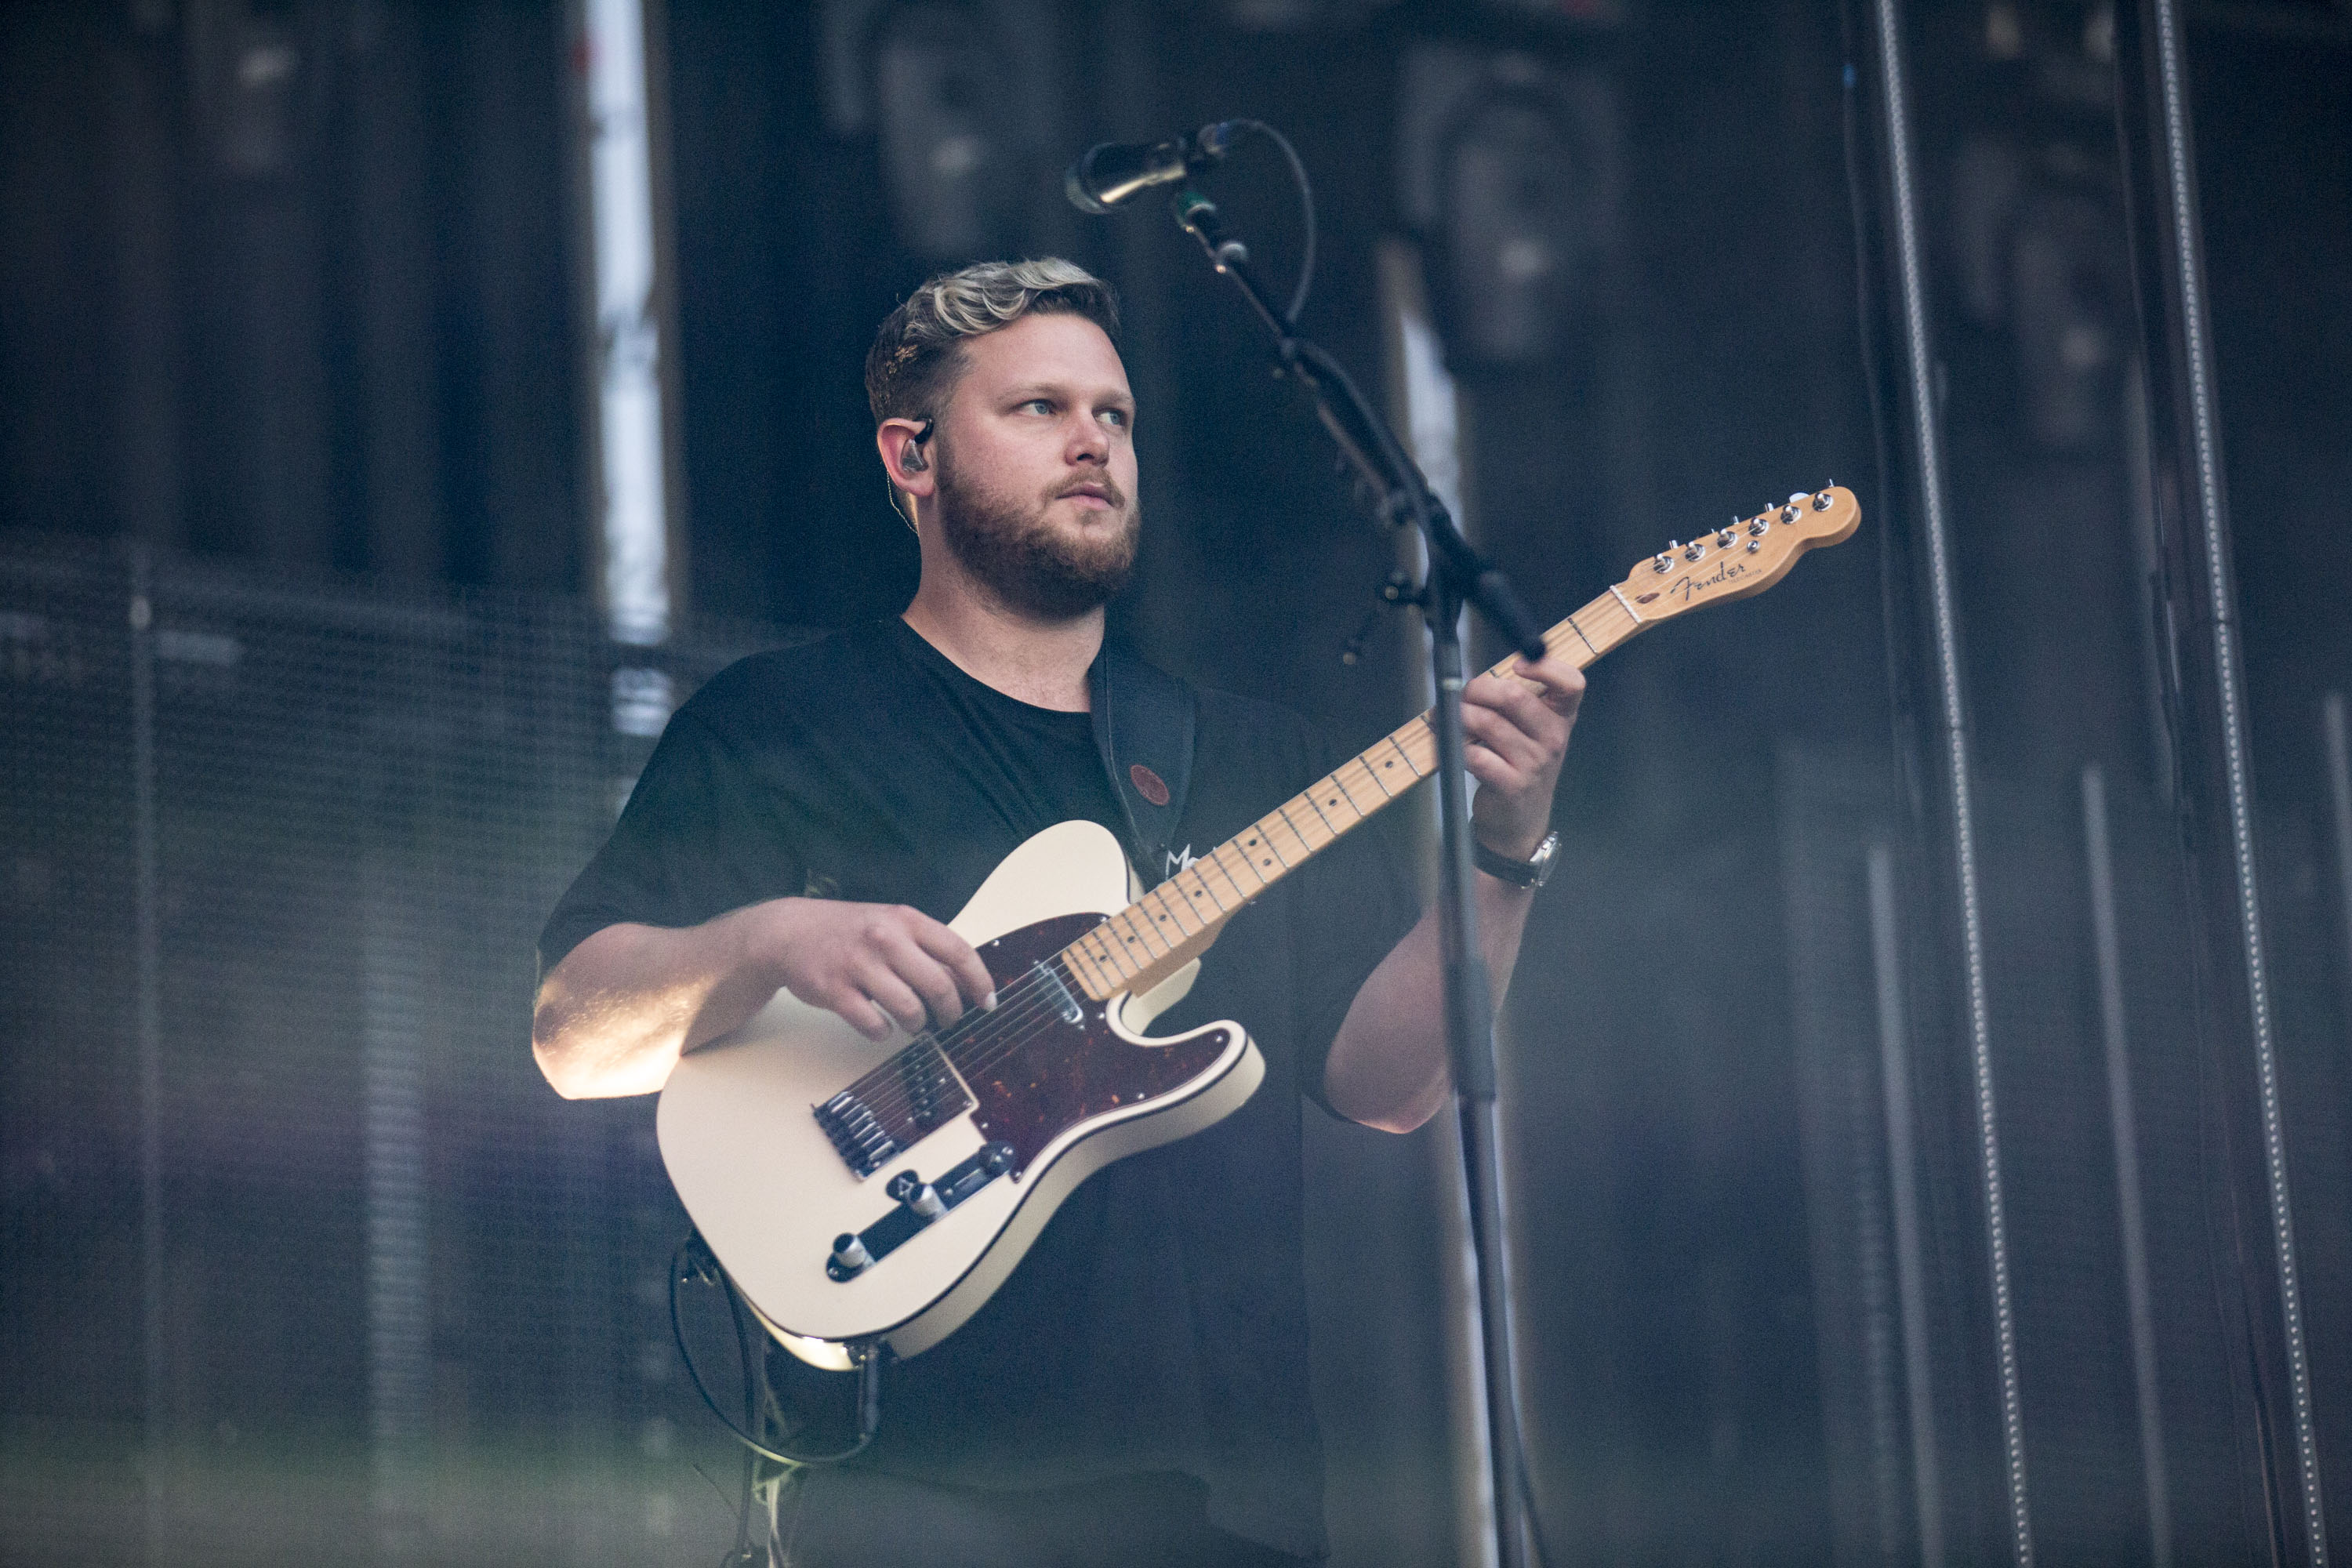 Alt-J are set to play an immersive sound show in New York